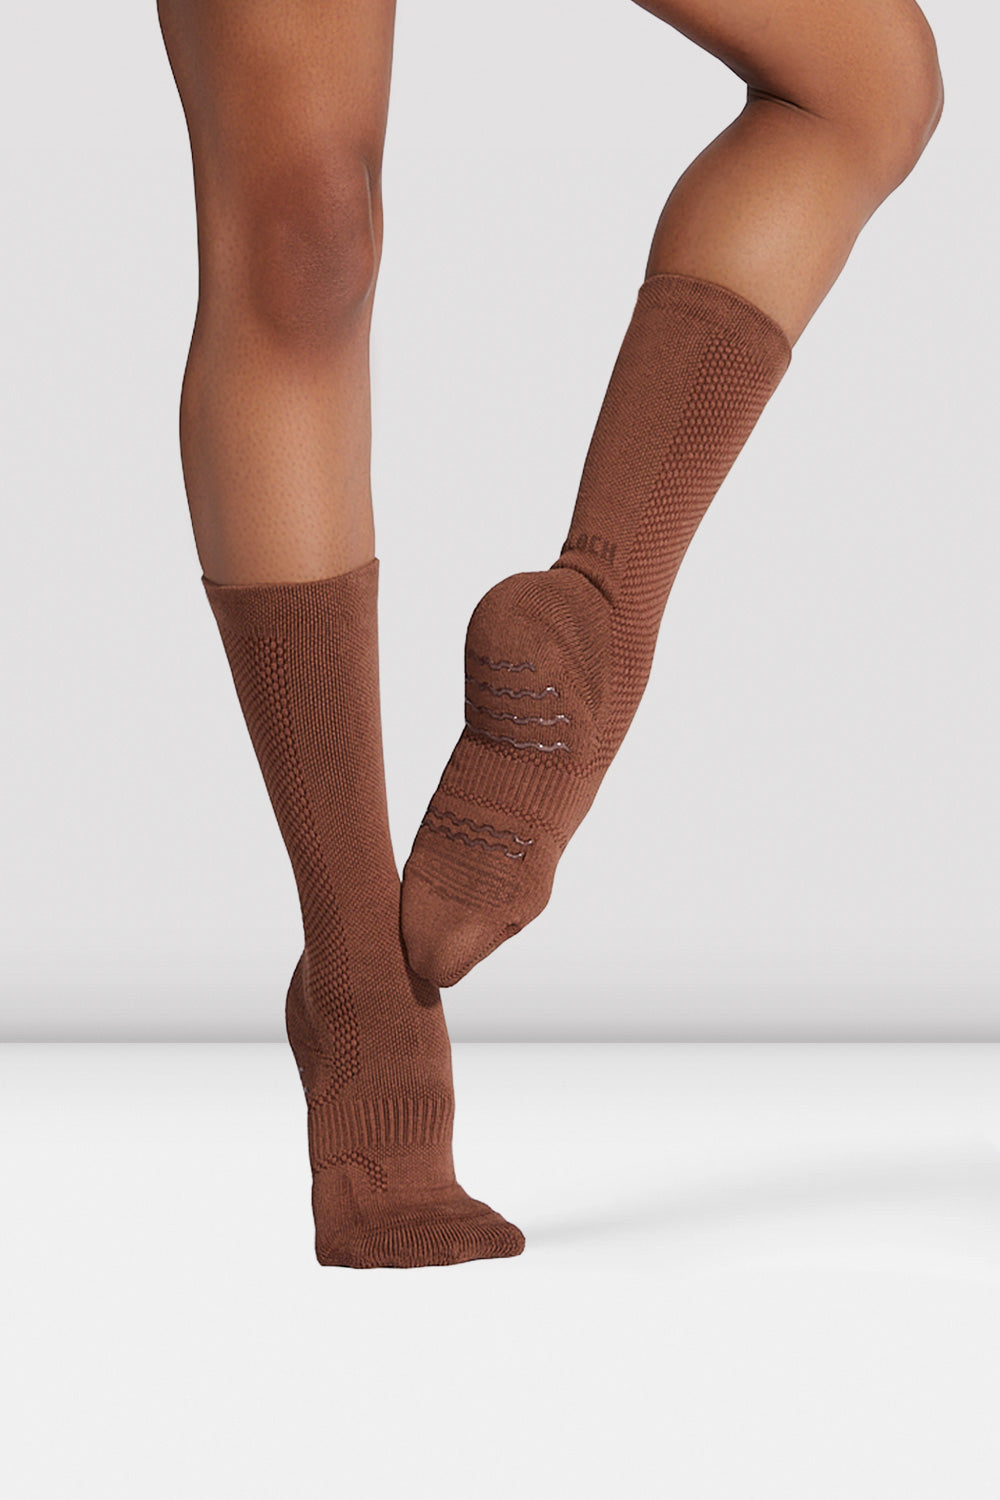 Bloch Blochsox Dance and Exercise Socks